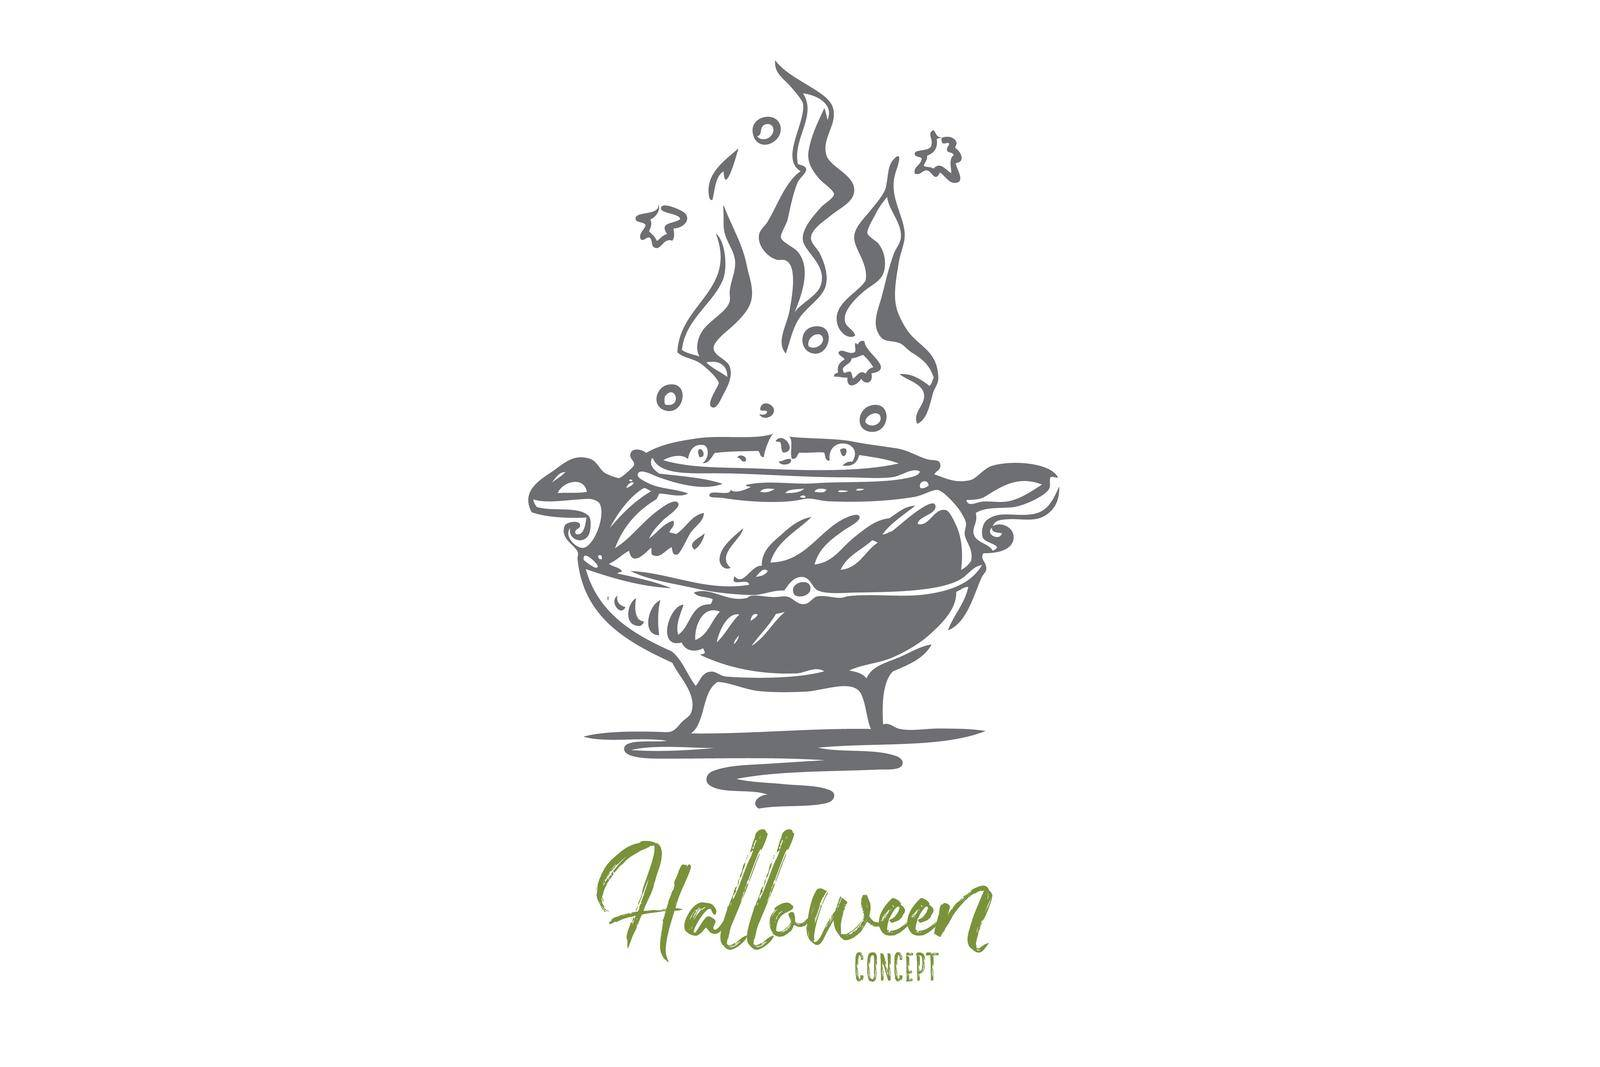 Pot, poison, Halloween, potion, holiday concept. Hand drawn isolated vector. by Vasilyeva